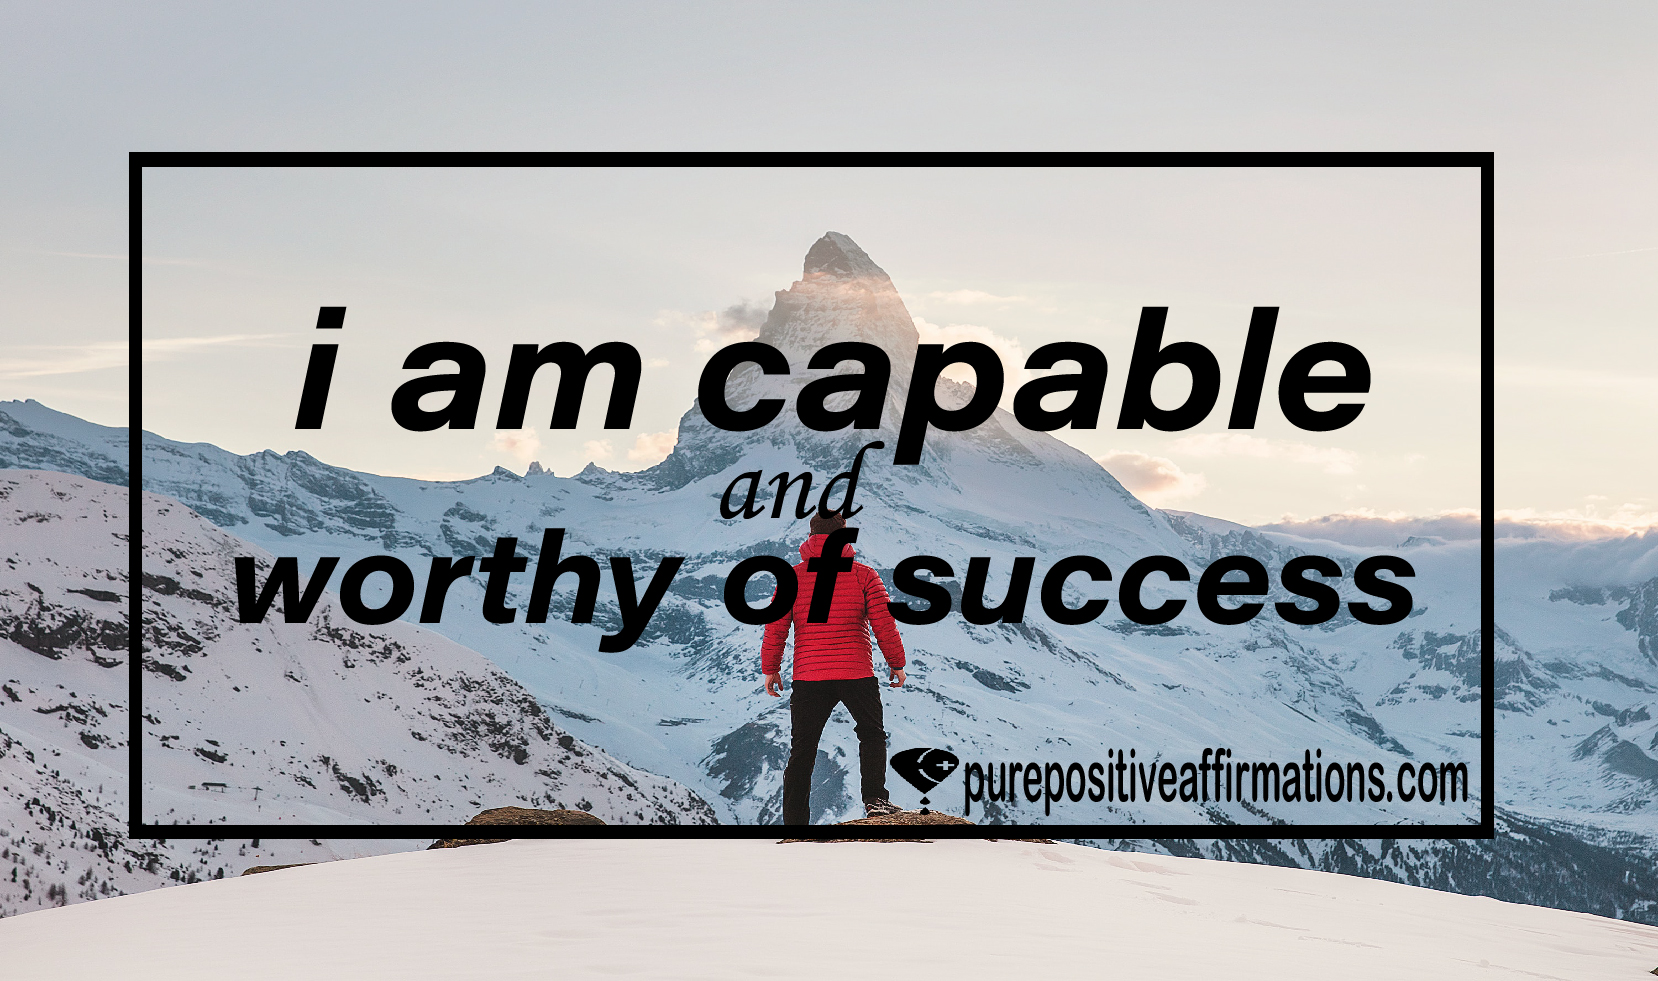 I am capable and worthy of success